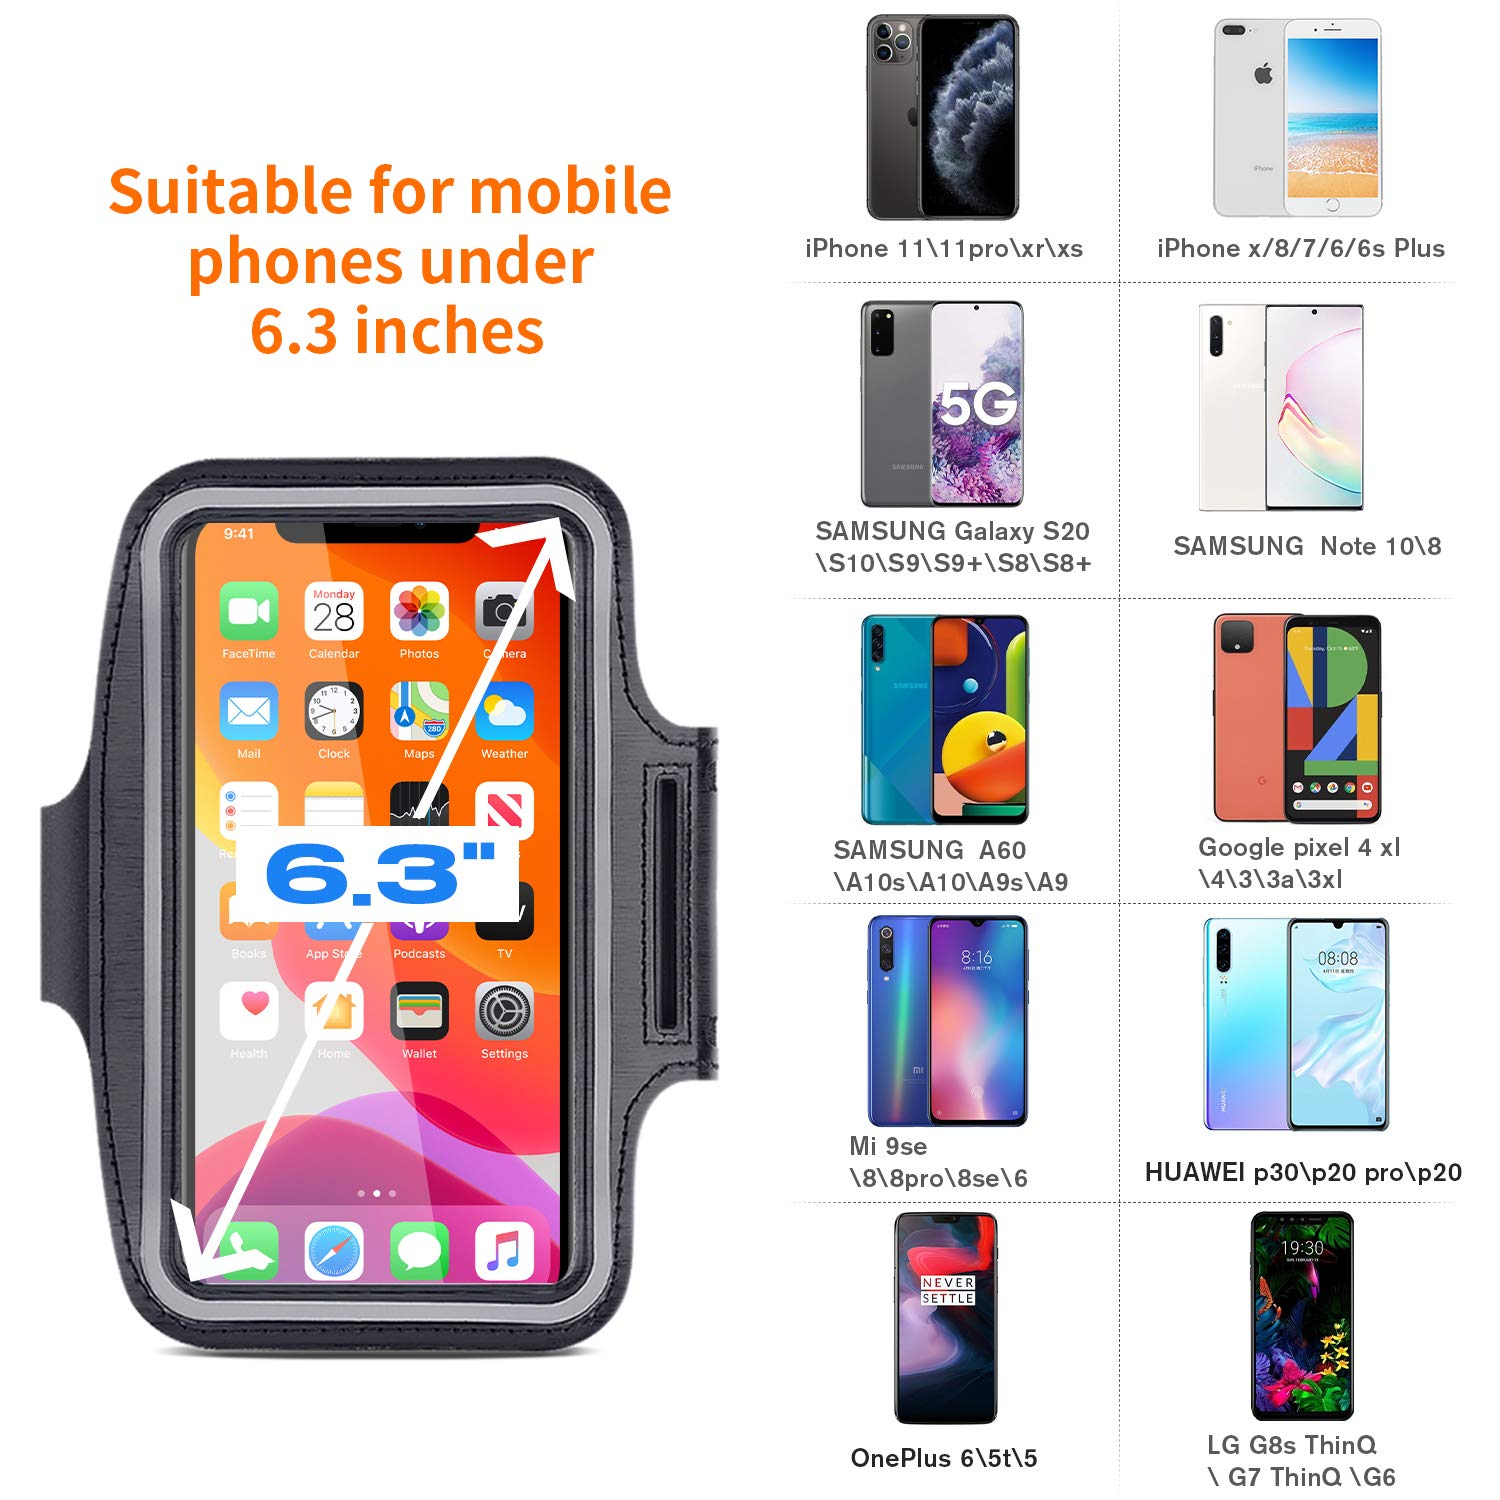 Aotlet Brazalete Deportivo para Correr,Universal Movil Running Armband con Correa Ajustable para iPhone 11/Xr/Xs/X/8/7/6,Samsung Galaxy S20/S10/S9/S8,Google Pixel 4/3,Huawei,OnePlus,LG,Menos de 6.3